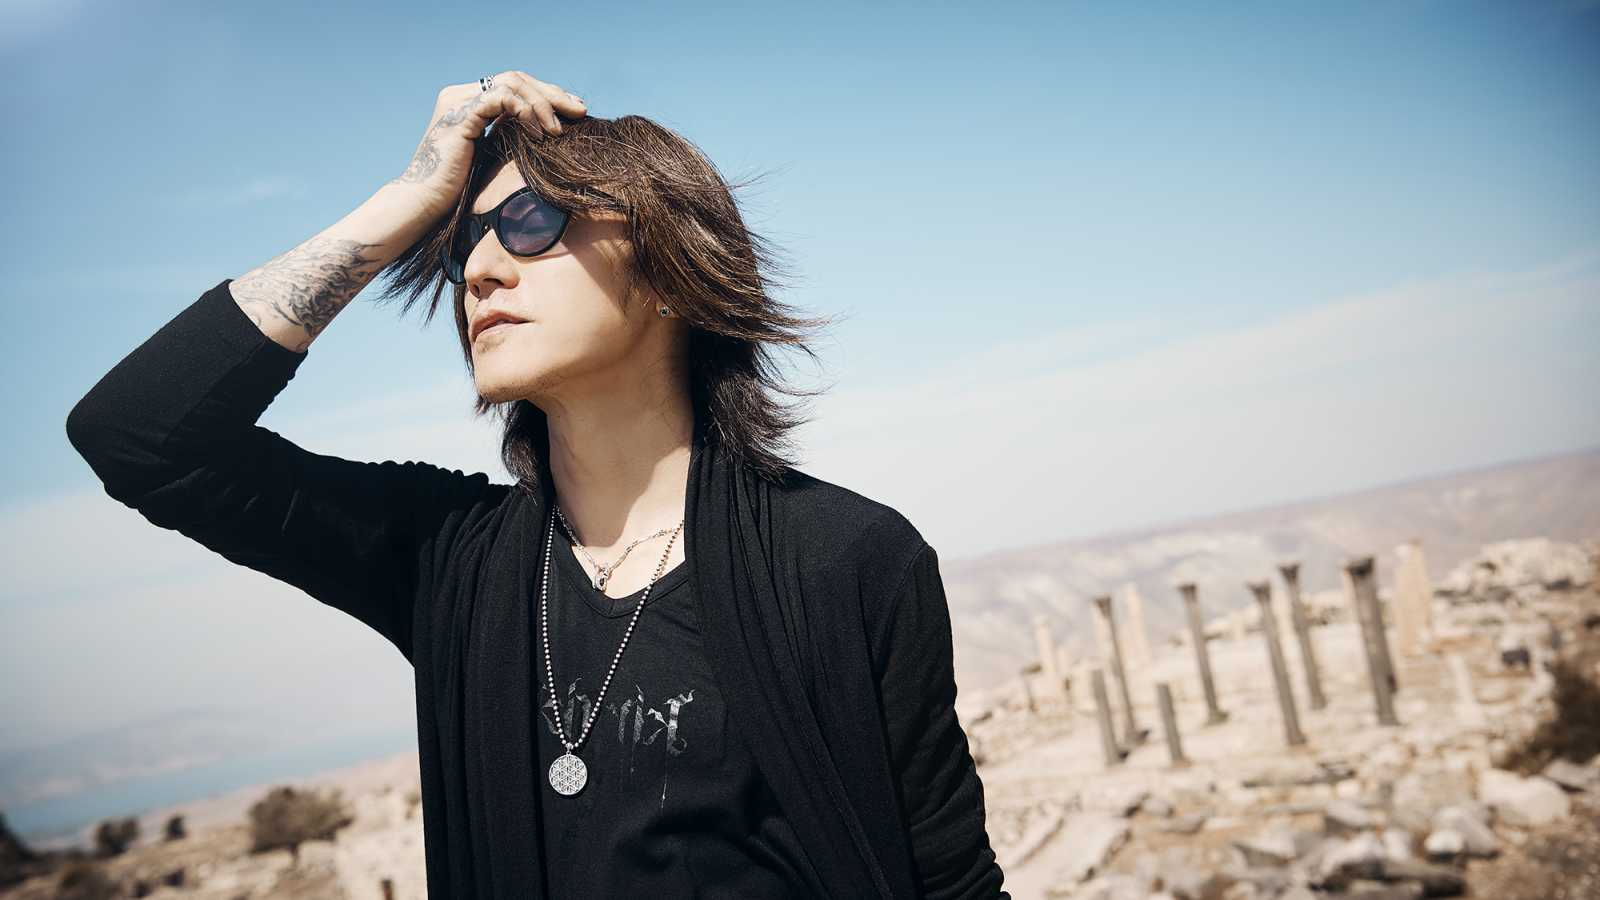 Entretien avec SUGIZO © SUGIZO. All rights reserved.